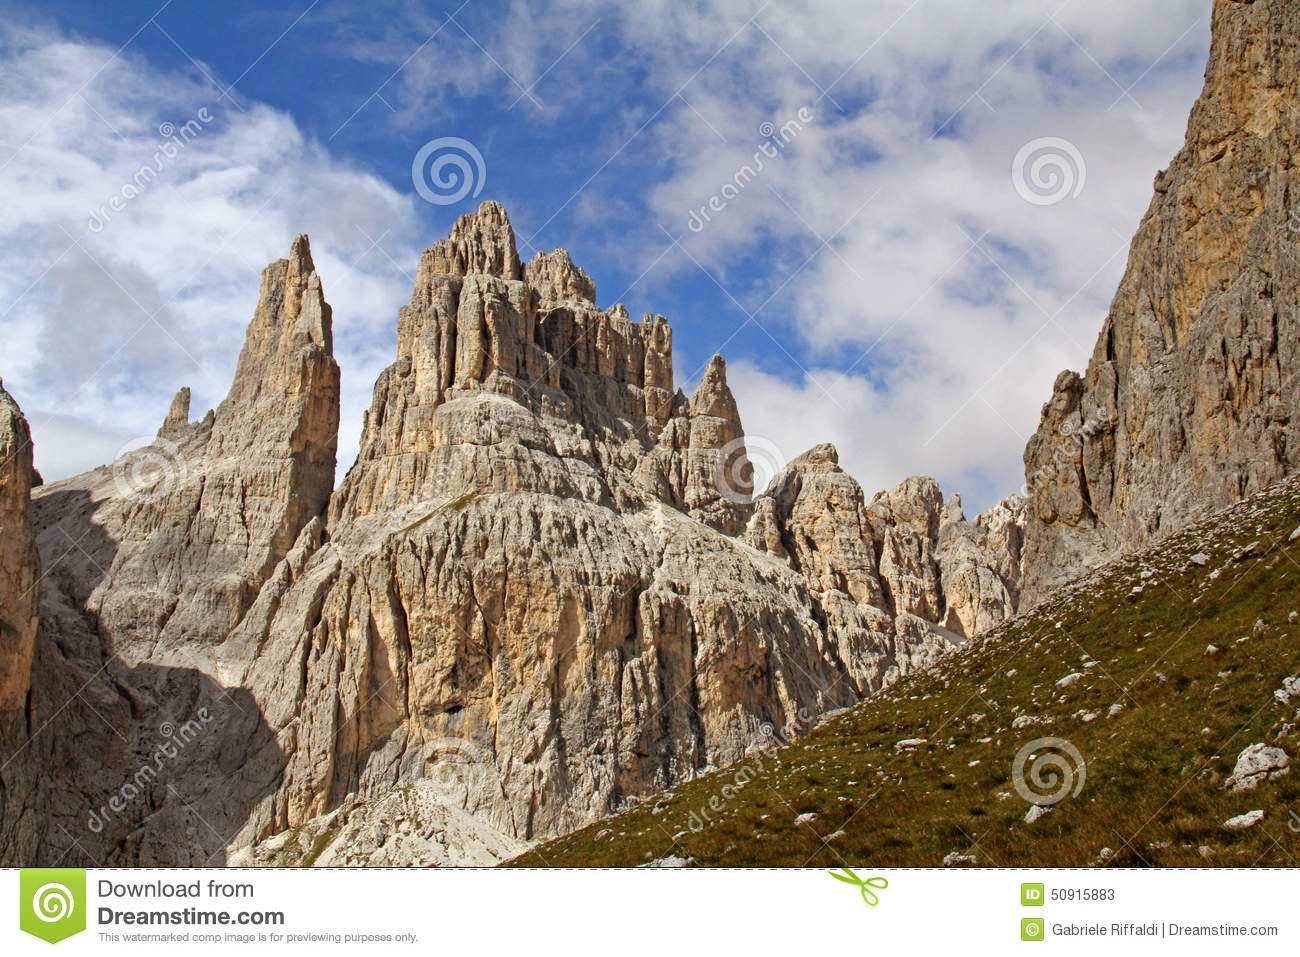 Vajolet Towers (Catinaccio Group) Stock Photo.